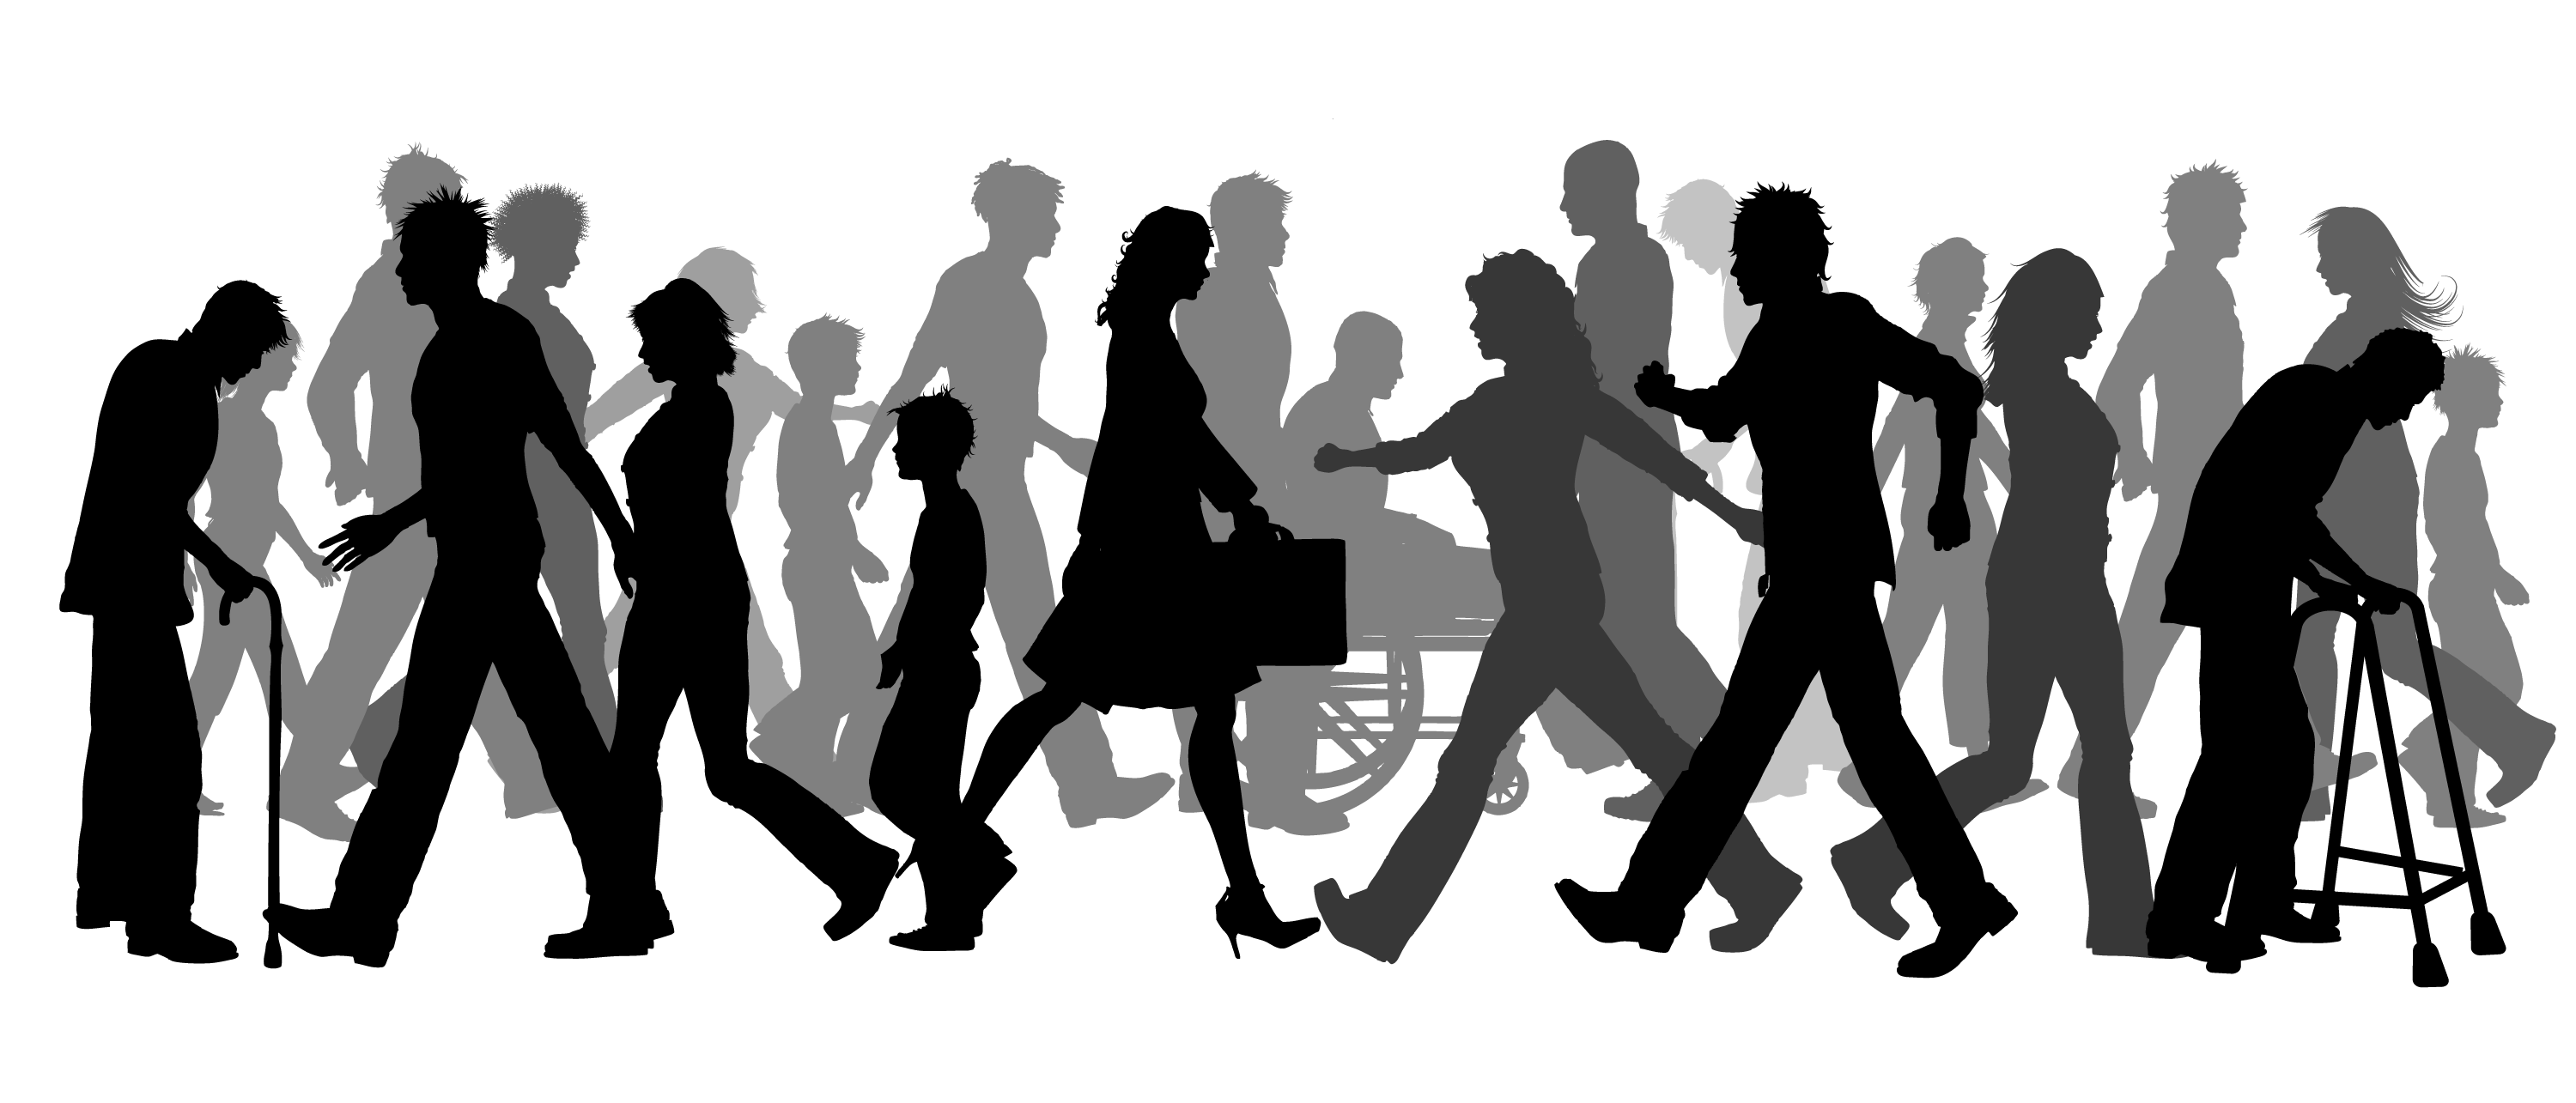 Walk vector crowd. Walking clip art group